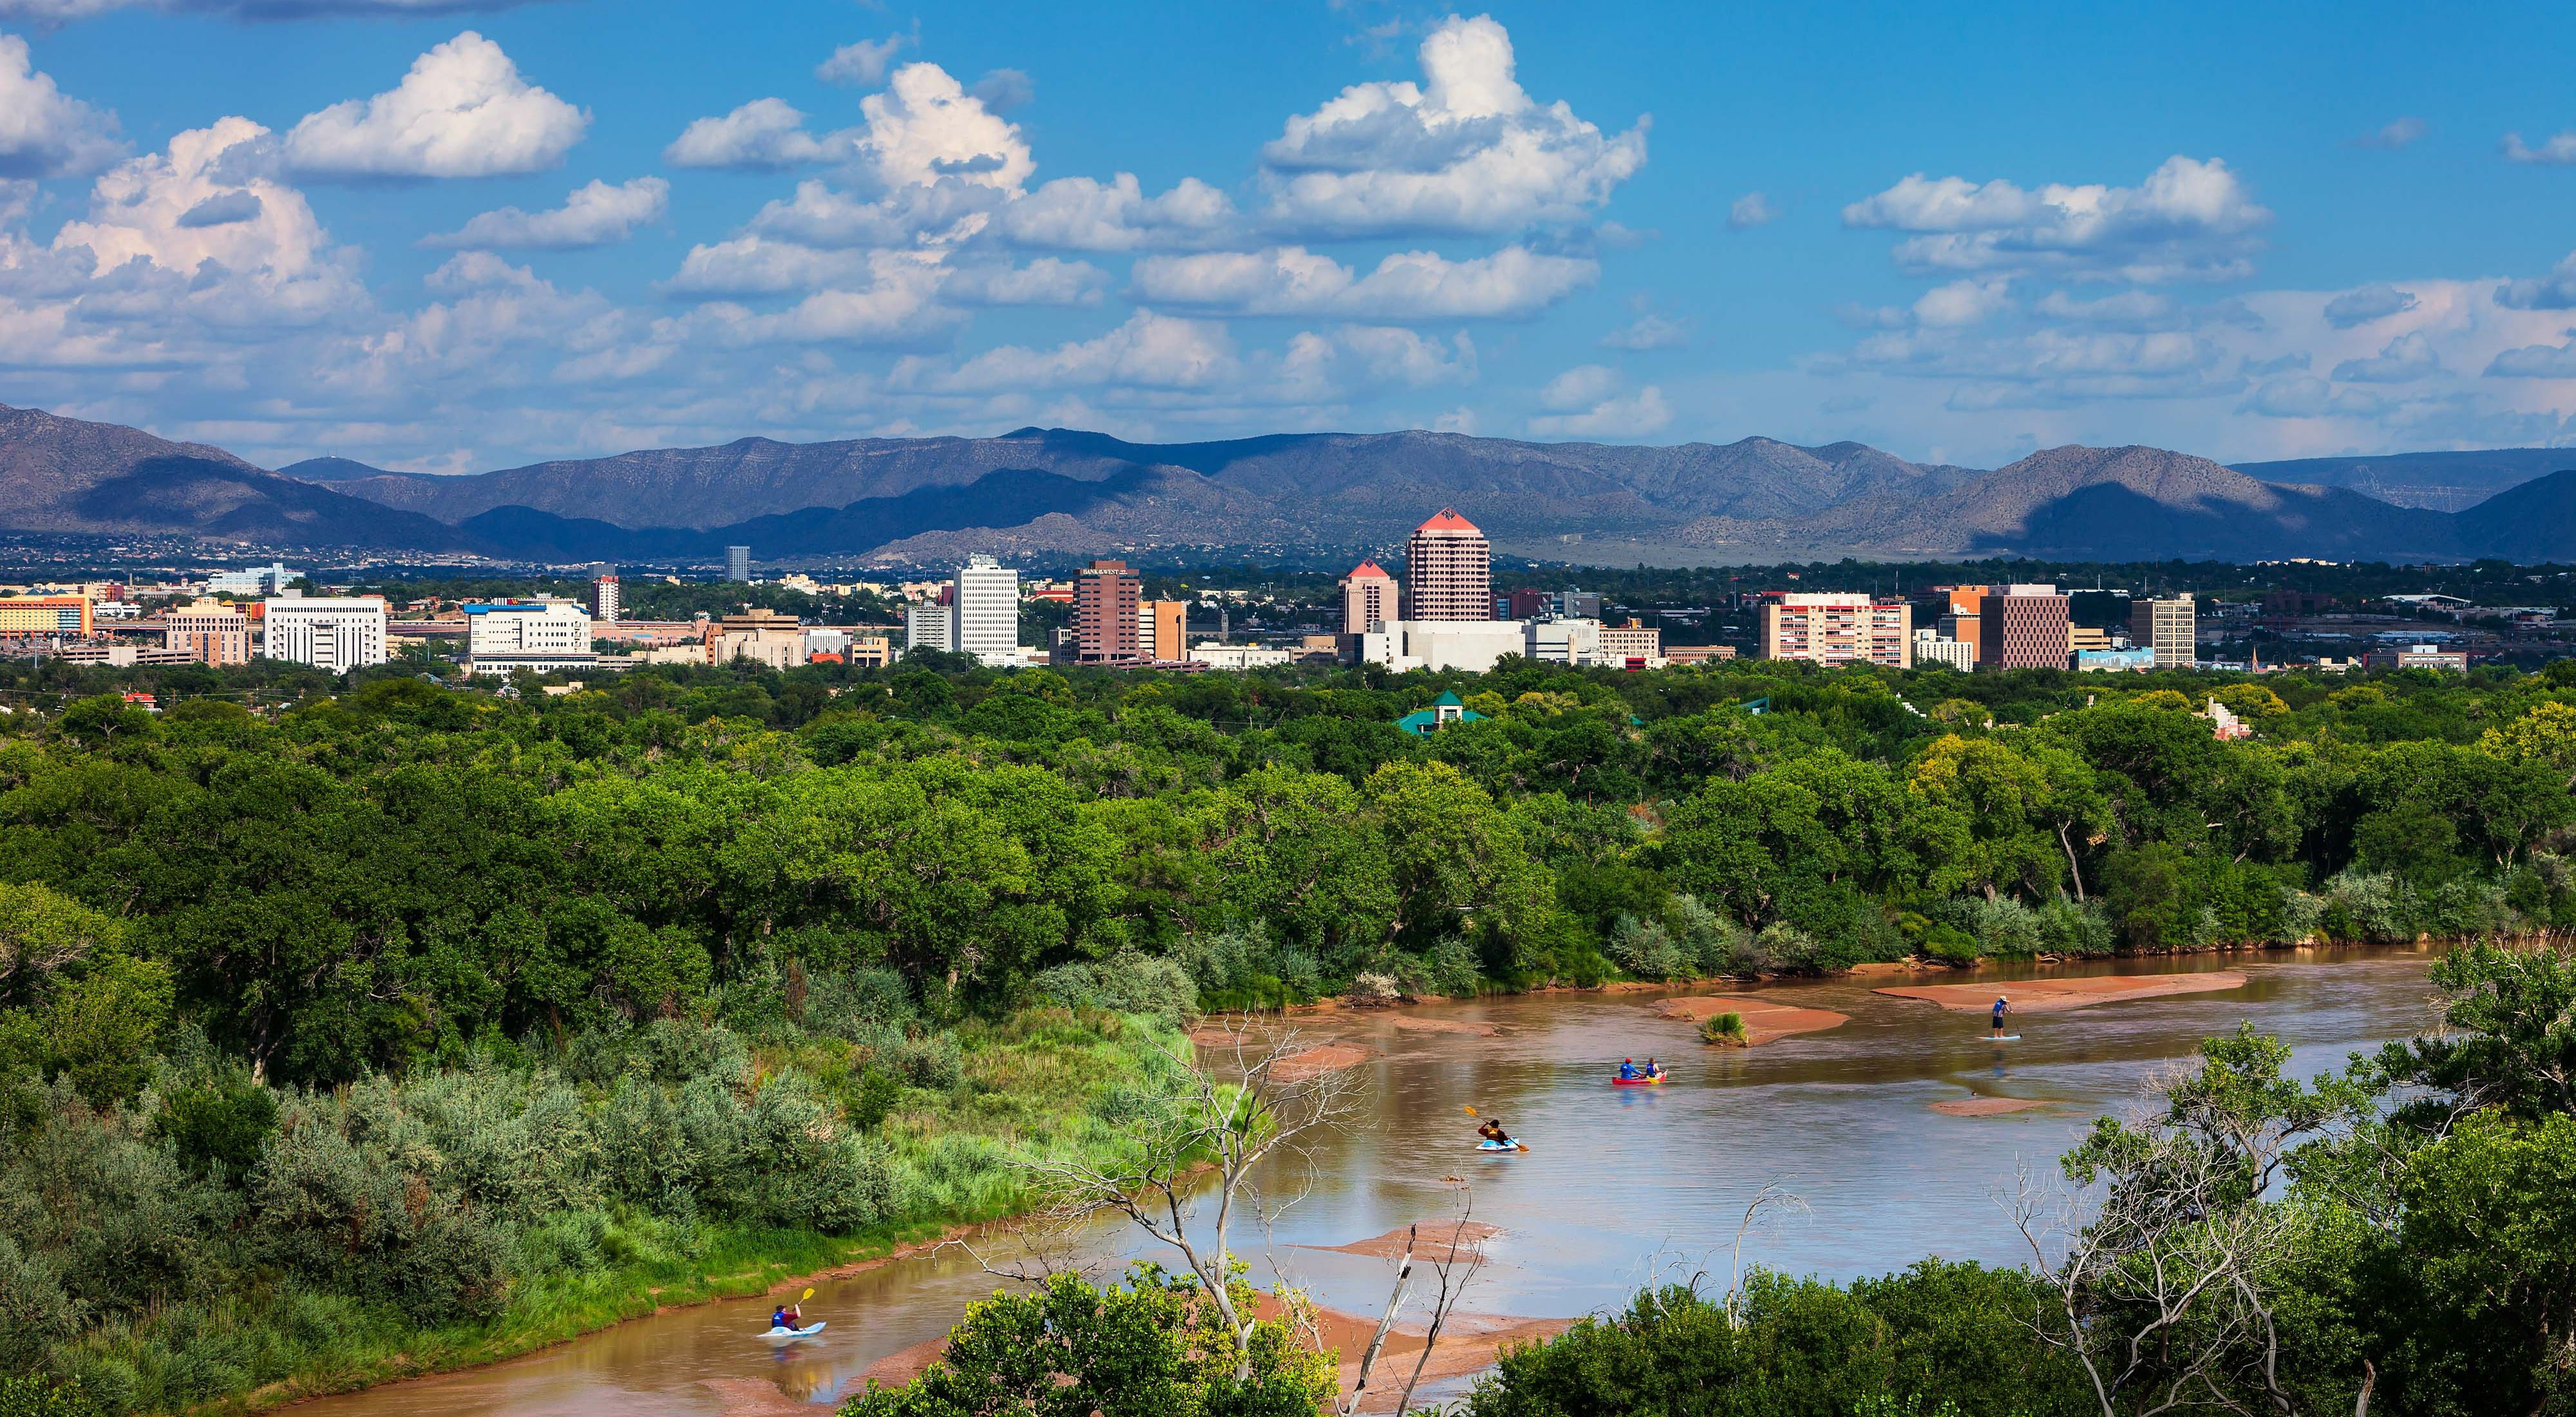 A view from a high vantage point looking over a muddy river with kayakers on it towards trees and a city skyline with mountains in the distance.